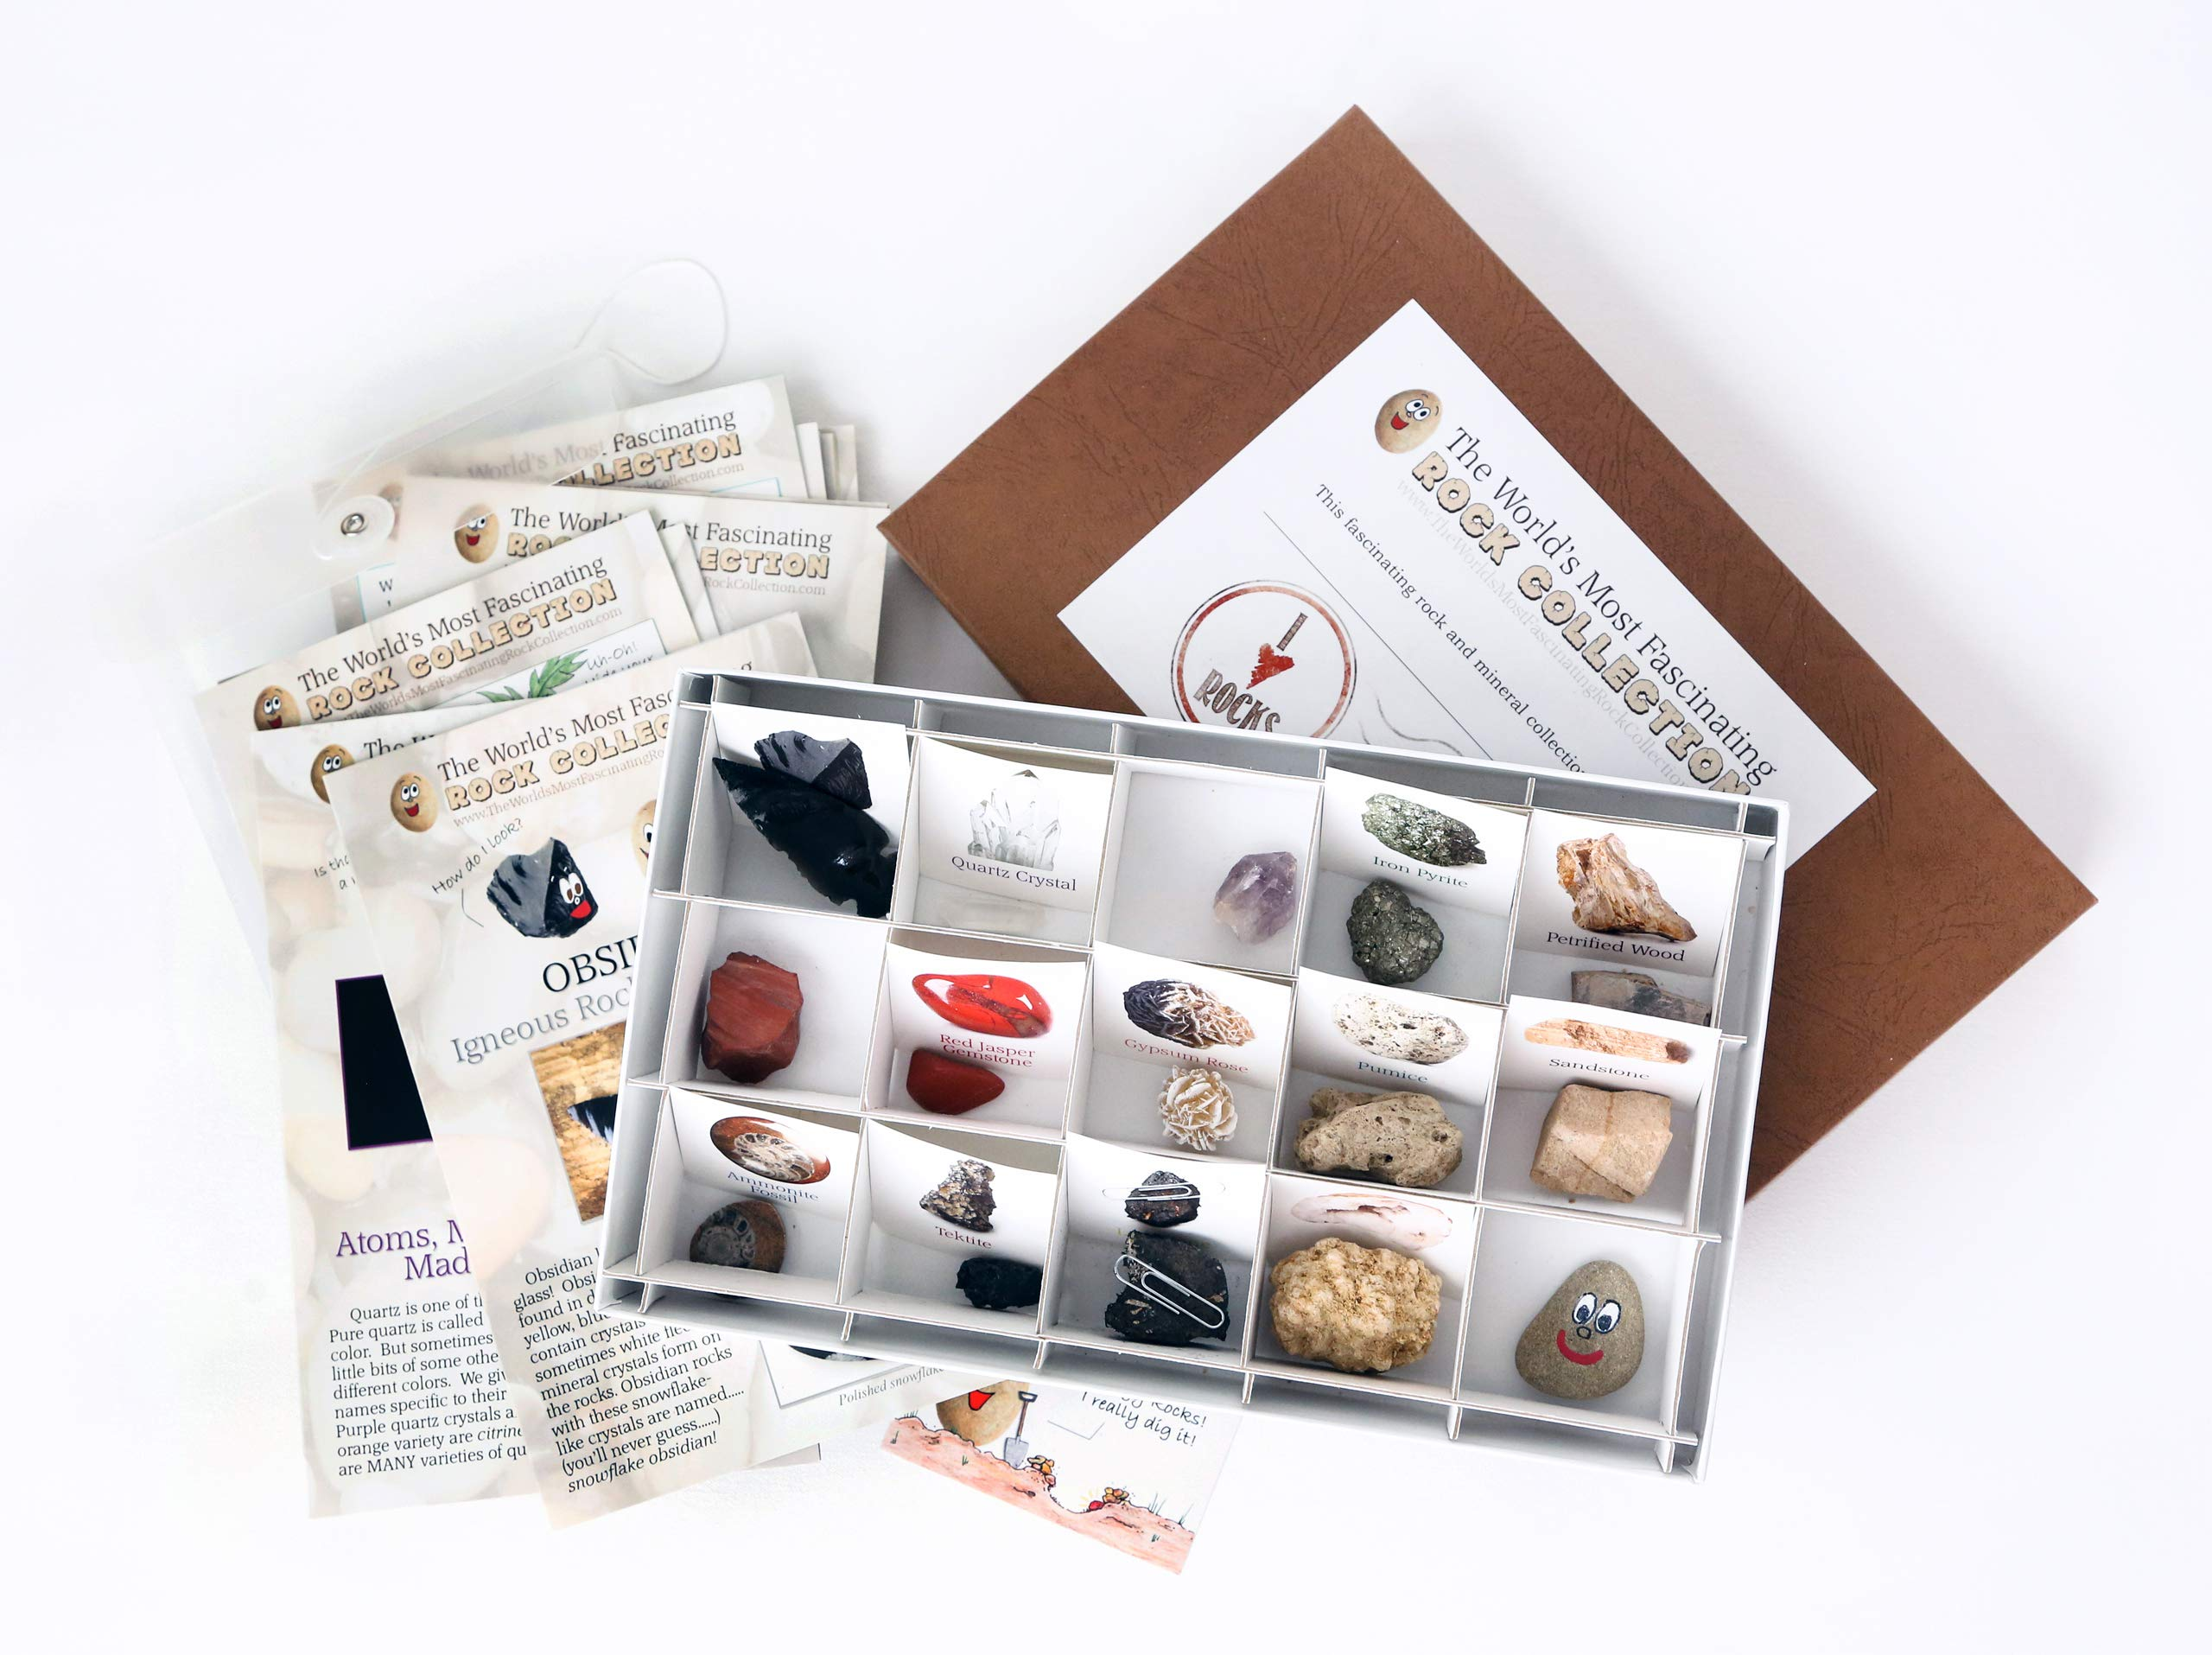 The World's Most Fascinating Rock Collection: Fun and Educational Read/Activity Based Rock and Mineral Kit (Boxed Set) by The World's Most Fascinating Rock Collection